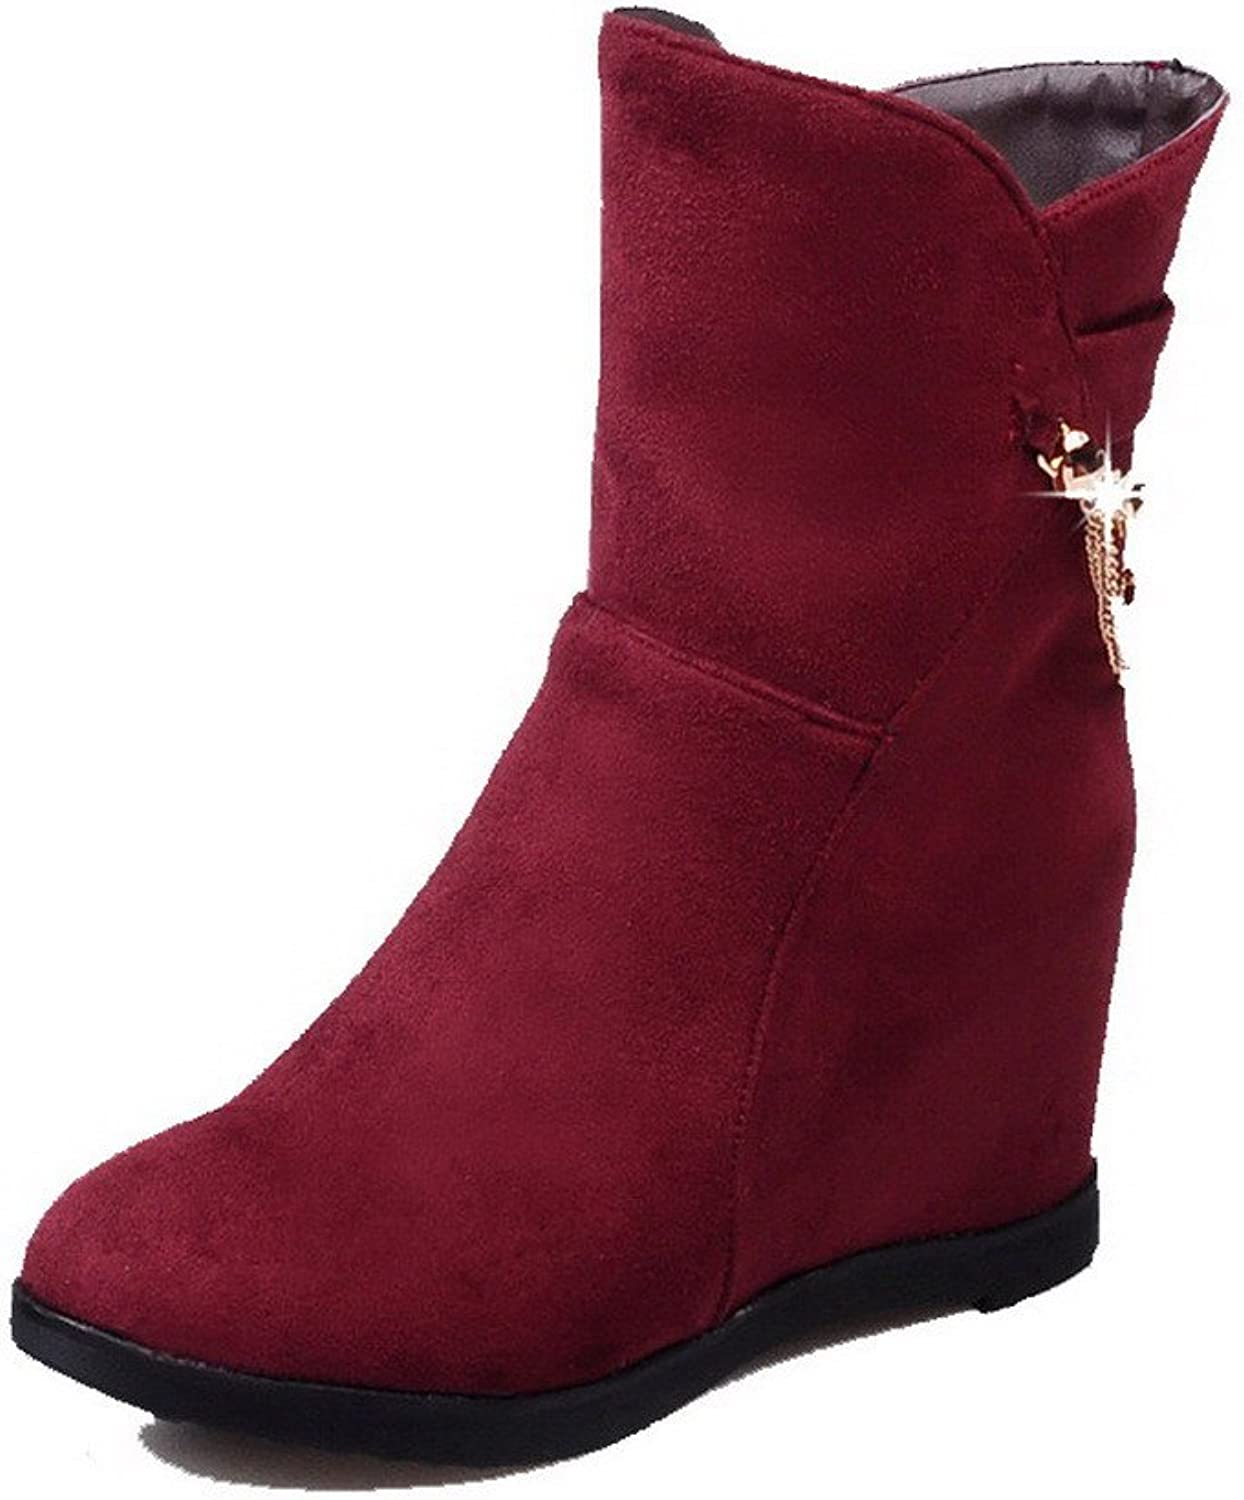 AmoonyFashion Women's Round Closed Toe High-Heels Frosted Low-top Solid Boots